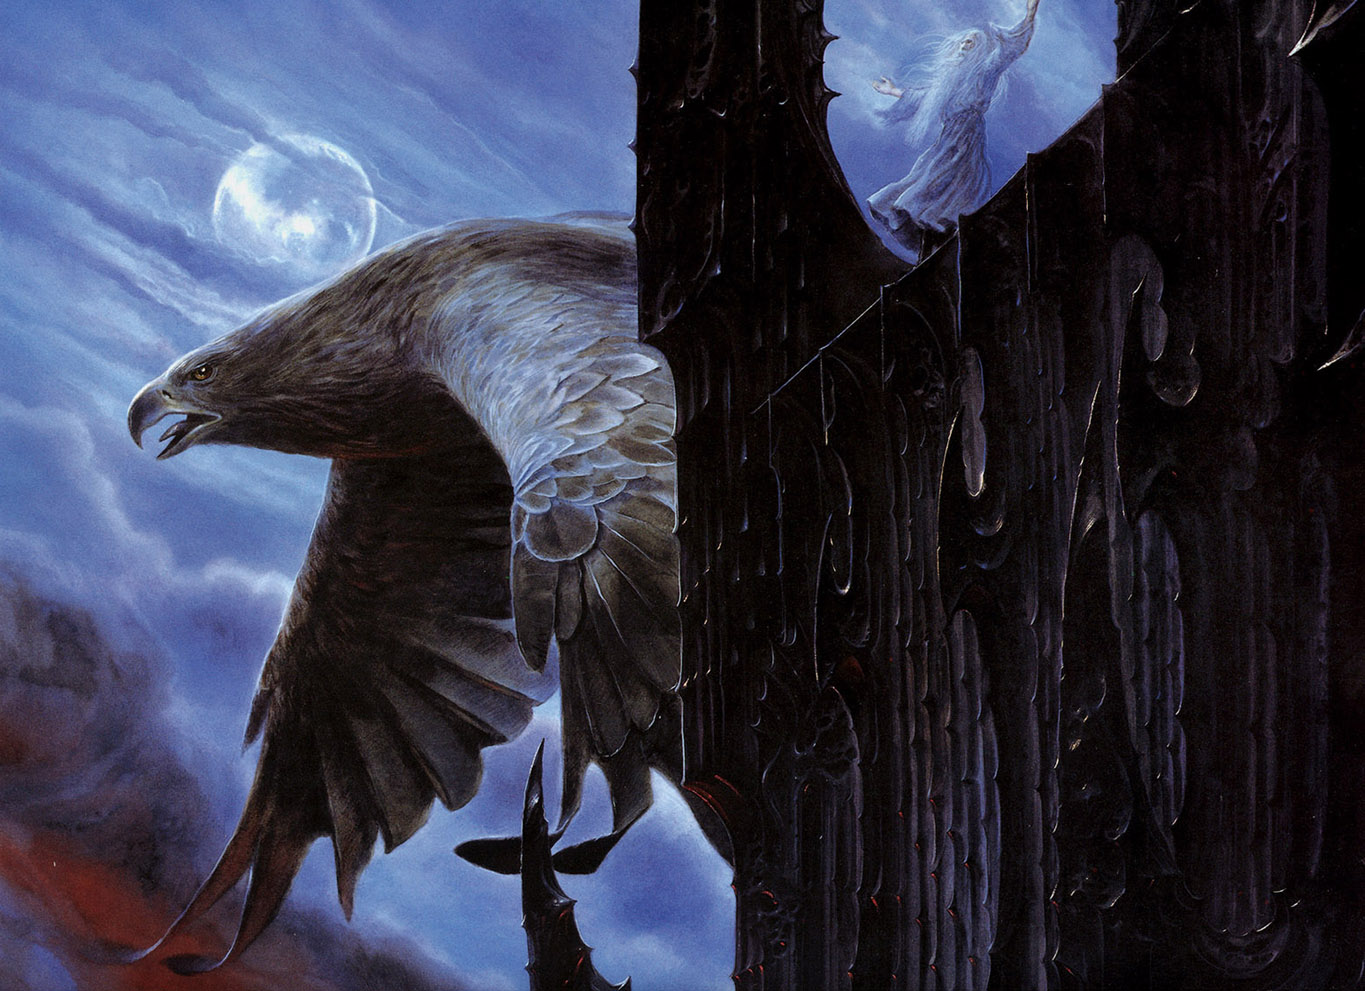 http://www.nasha-lavochka.ru/images/john_howe/escape_from_orthanc.jpg